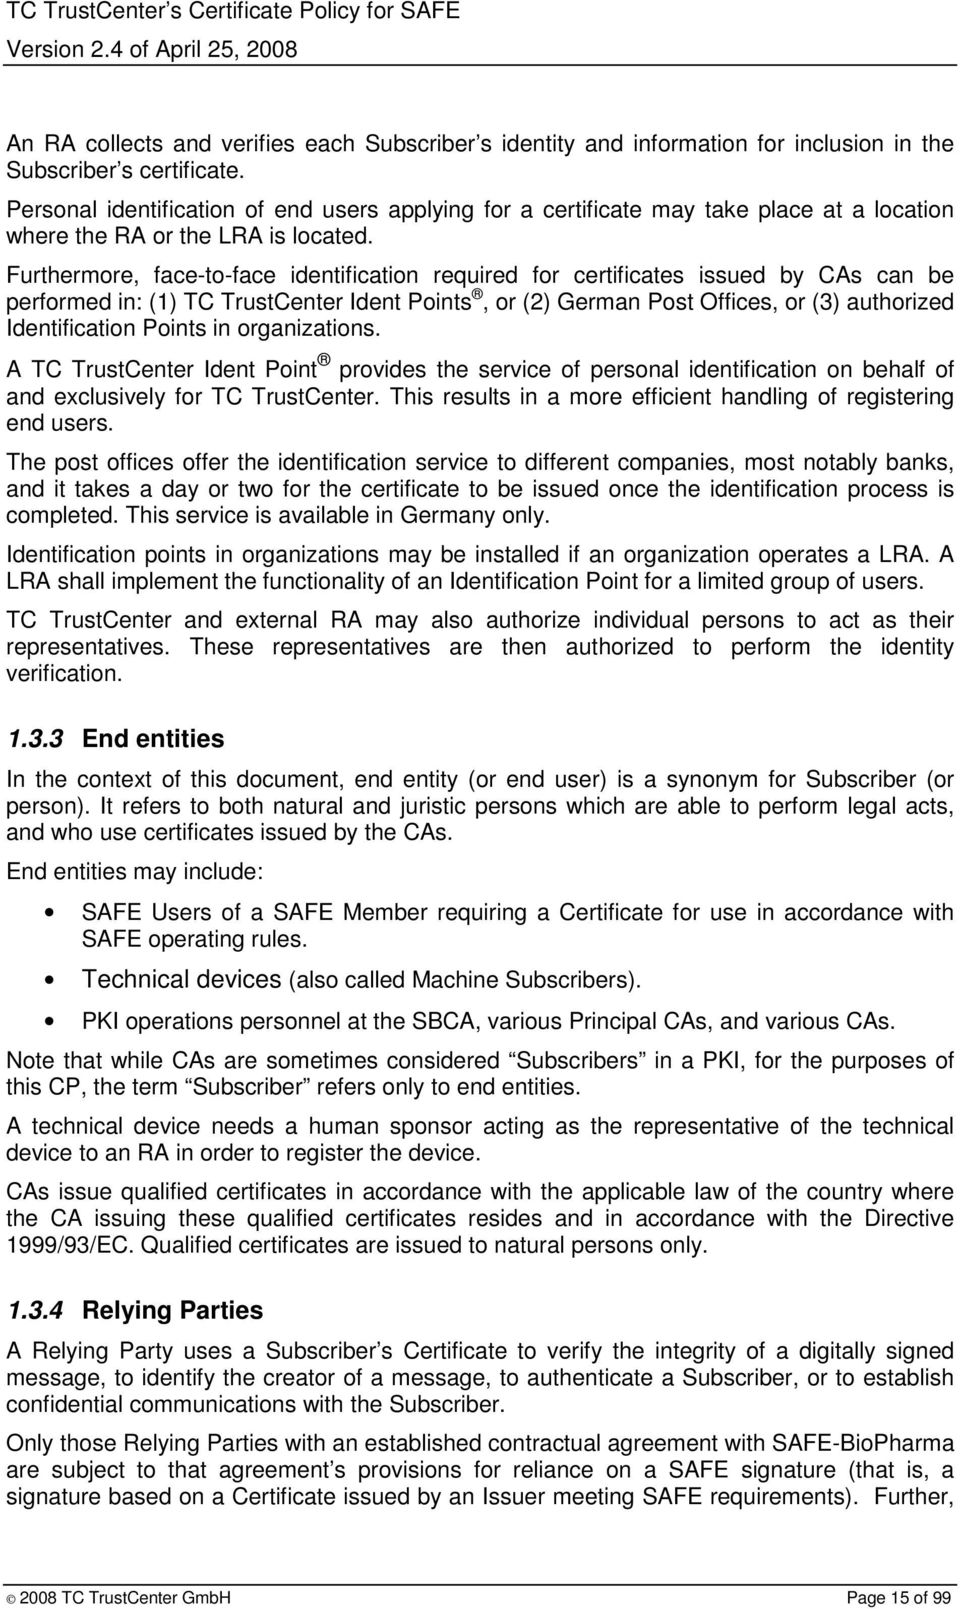 Furthermore, face-to-face identification required for certificates issued by CAs can be performed in: (1) TC TrustCenter Ident Points, or (2) German Post Offices, or (3) authorized Identification